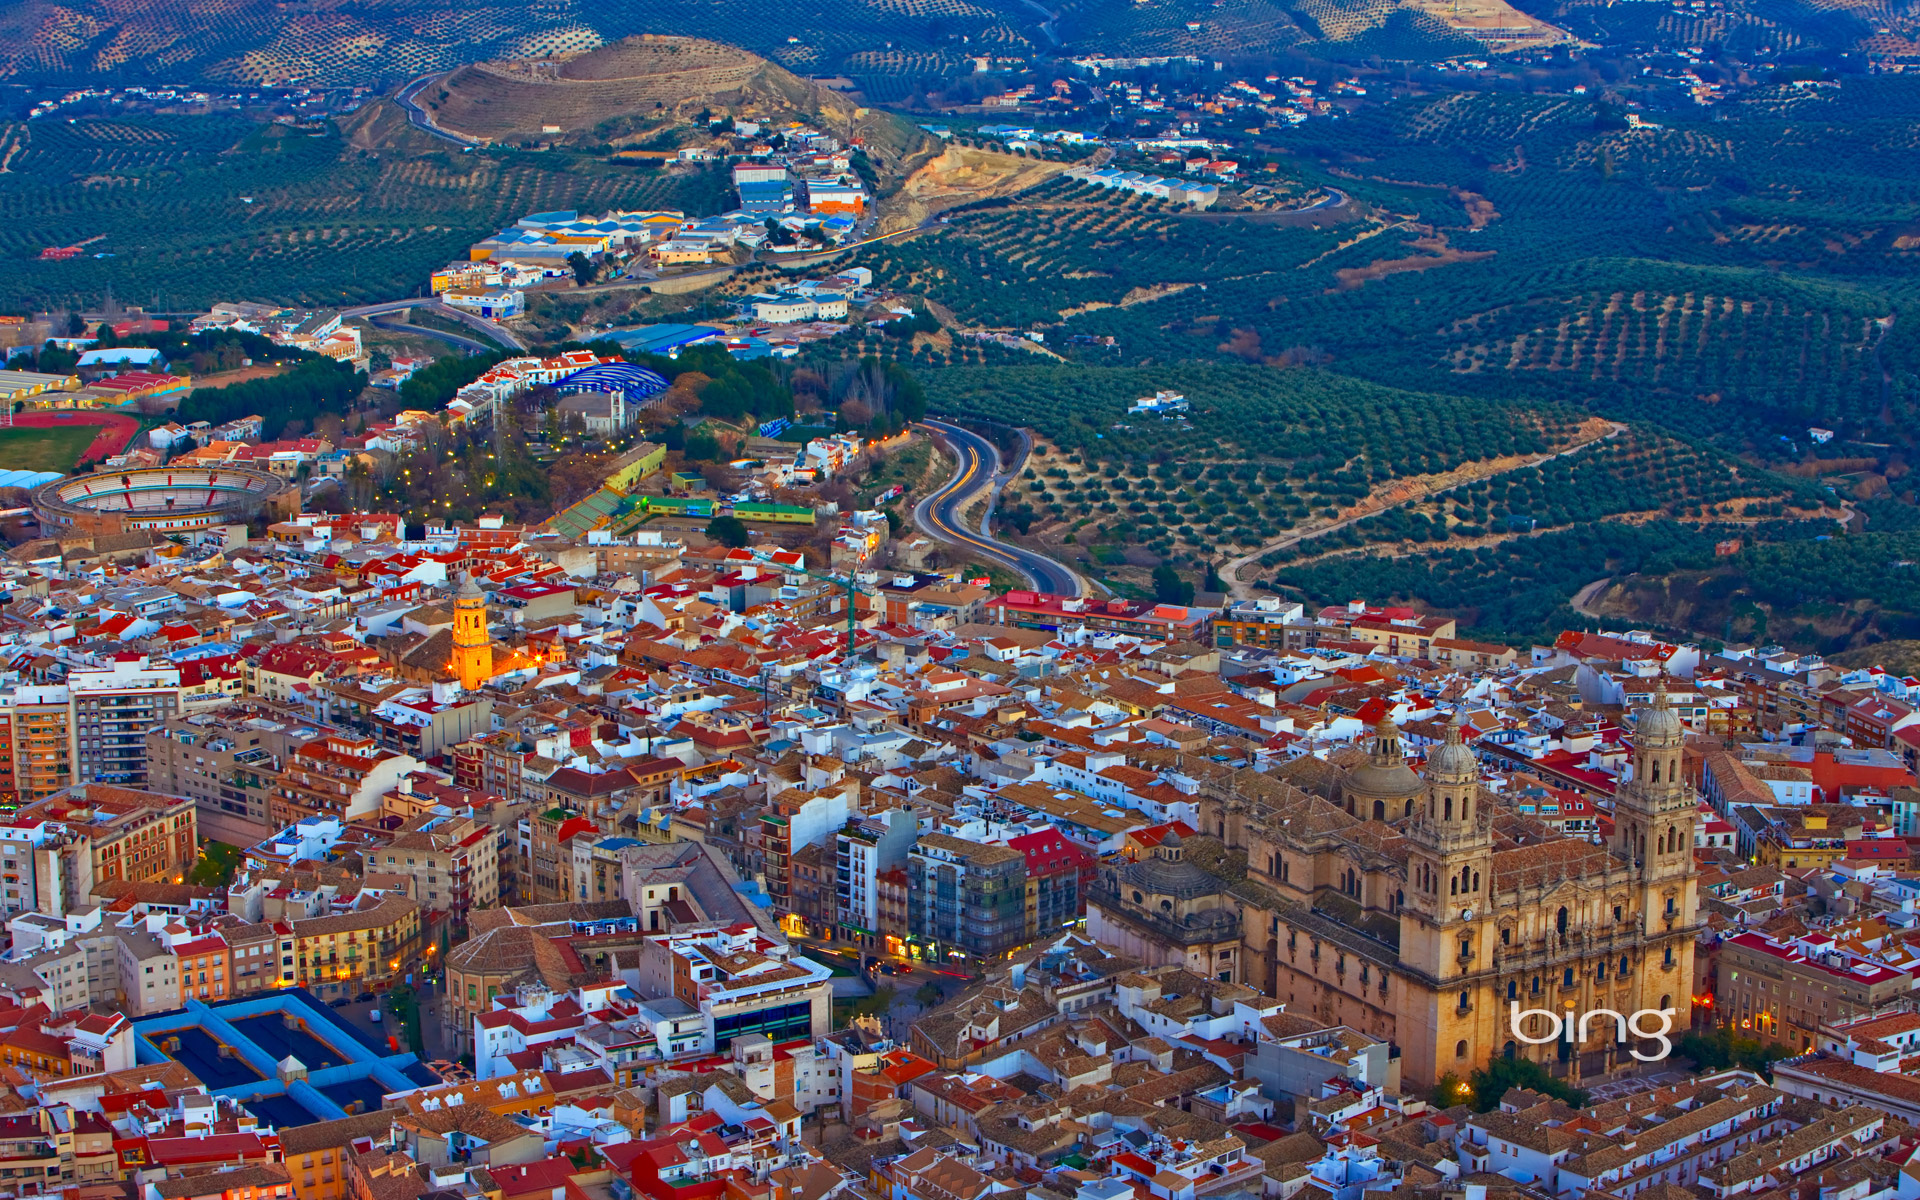 City of Jaén in Andalusia, Spain